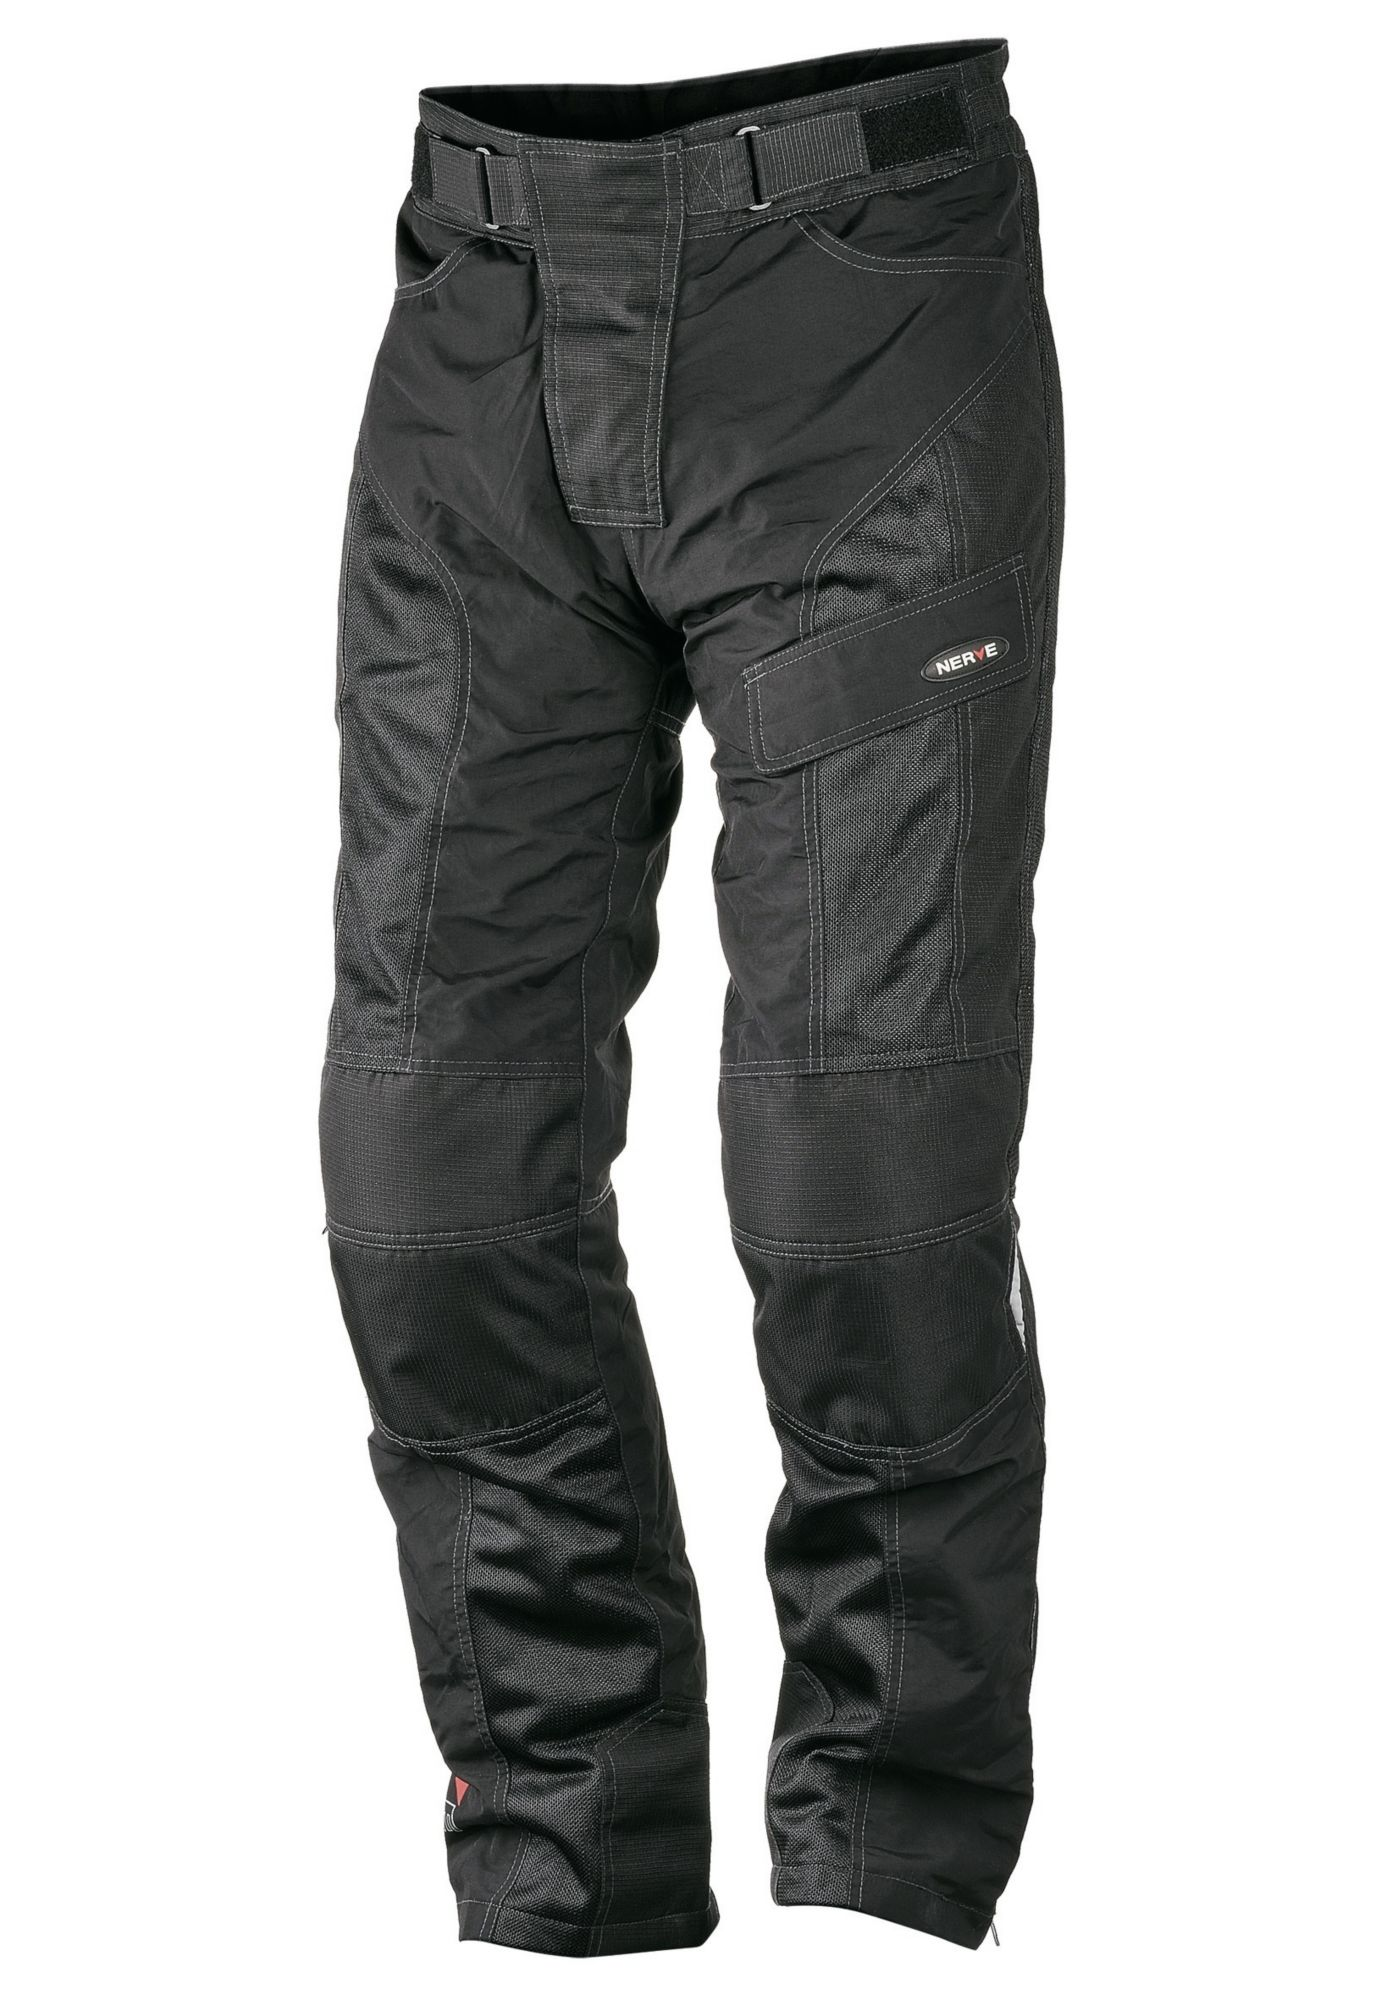 NERVE Nerve Damenmotorradhose »Run Girl«